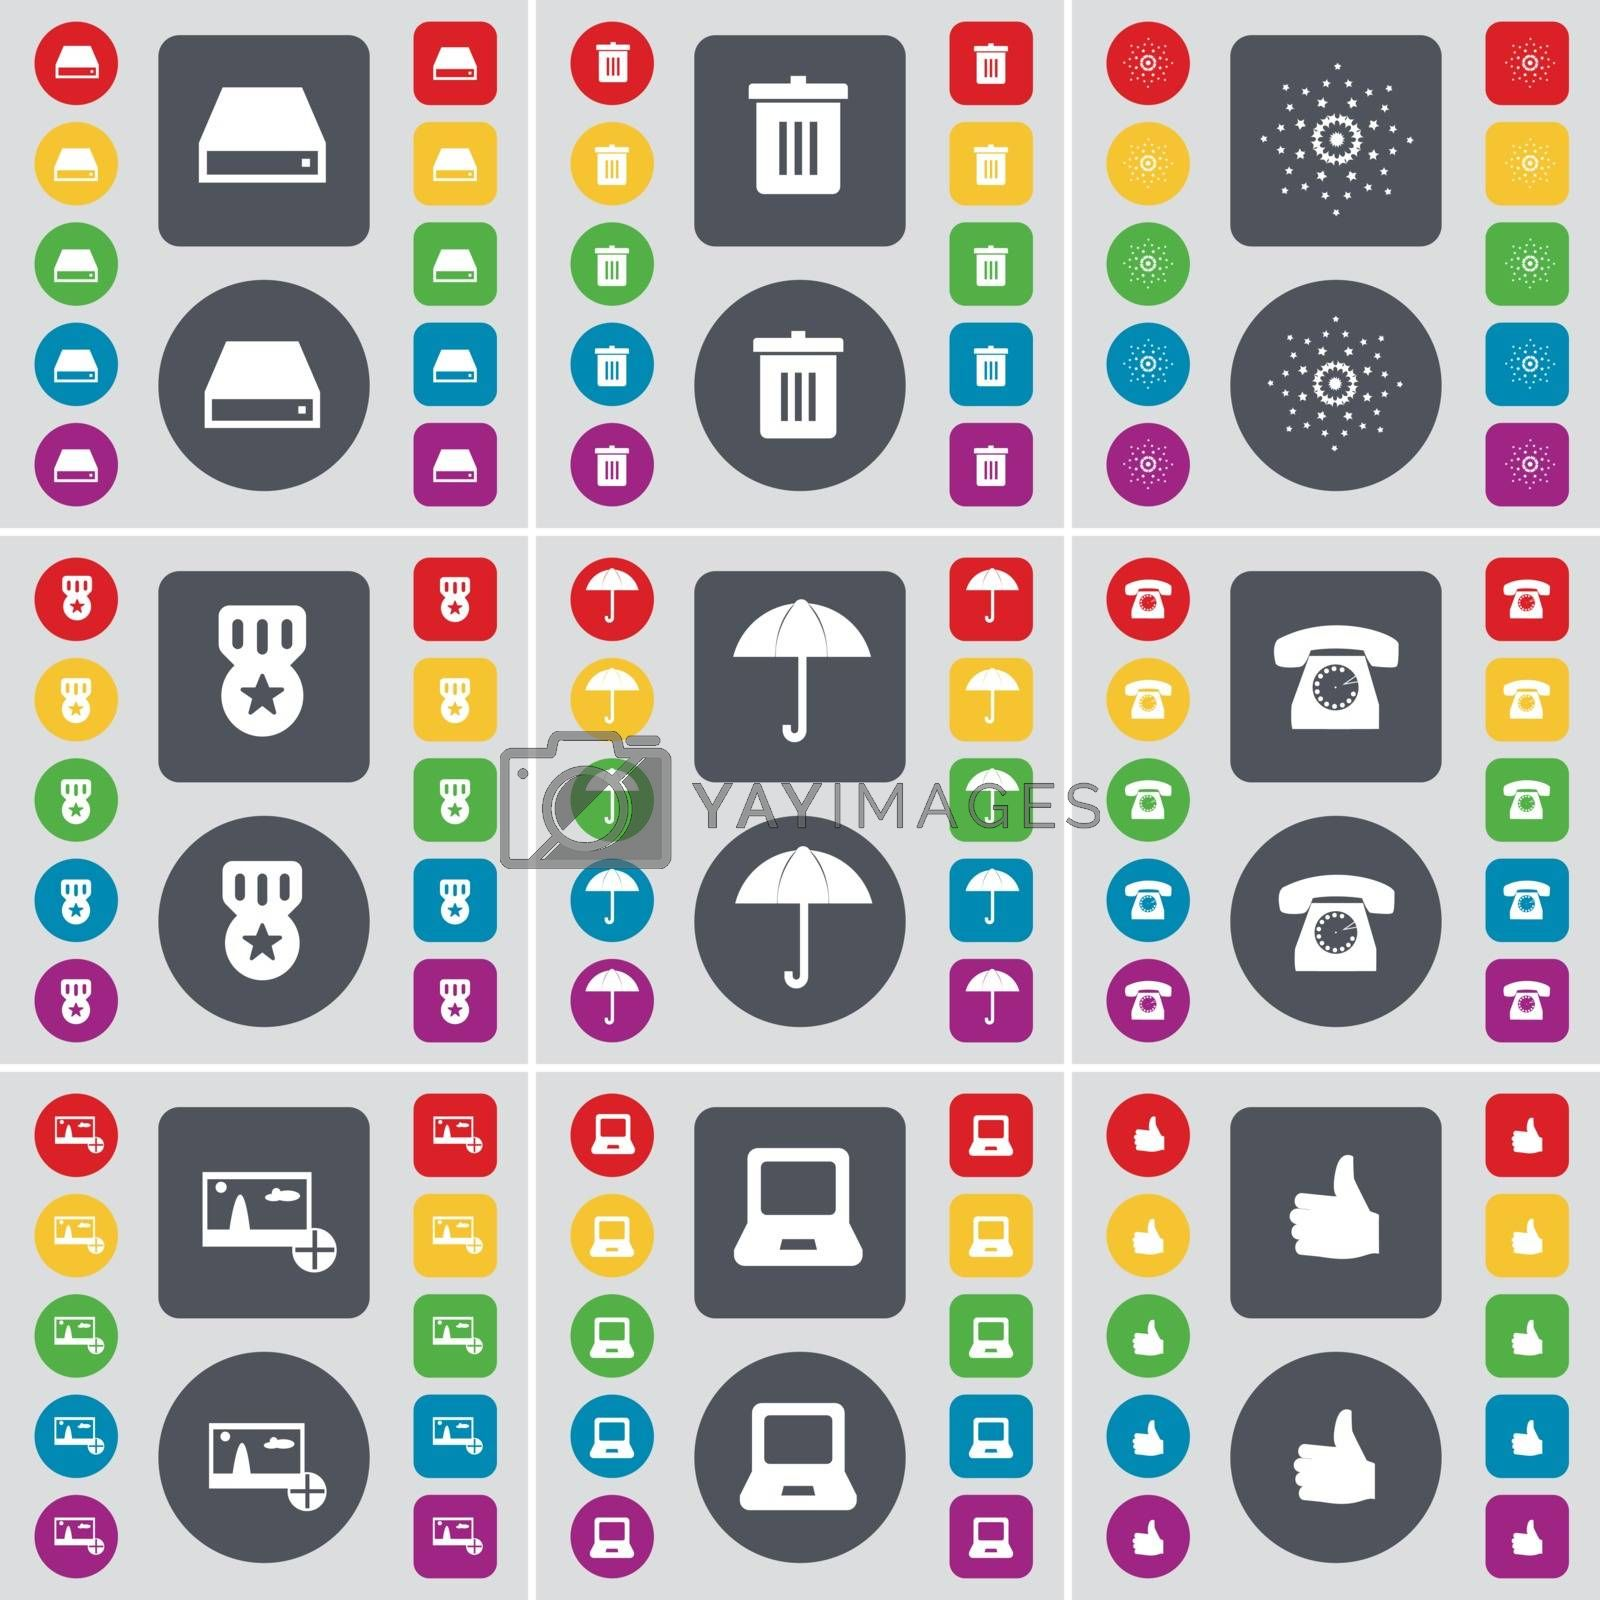 Royalty free image of Hard drive, Trash can, Star, Medal, Umbrella, Retro phone, Picture, Laptop, Like icon symbol. A large set of flat, colored buttons for your design. Vector by serhii_lohvyniuk